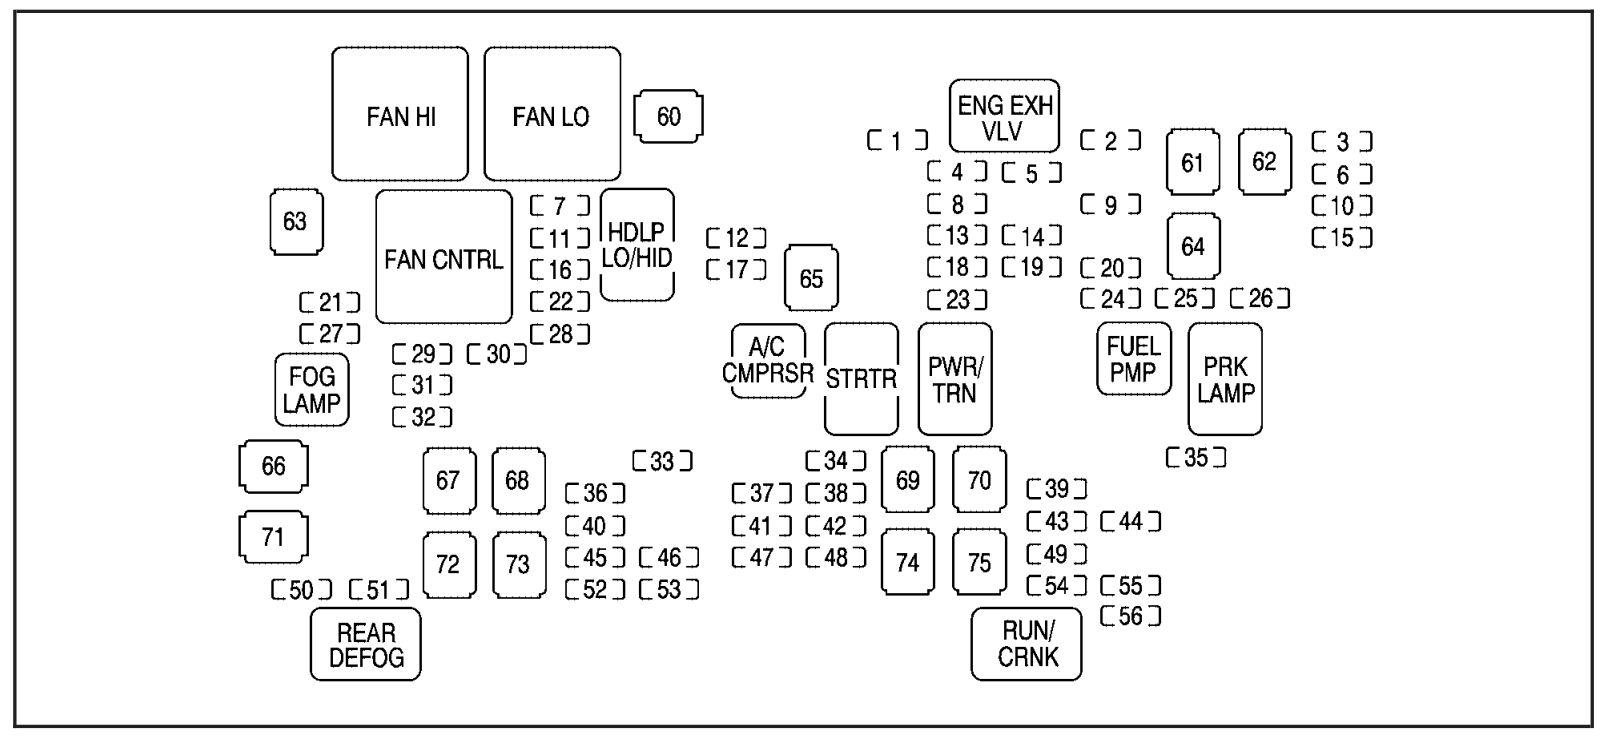 2007 Chevy Avalanche Fuse Box Diagram Great Design Of Wiring Uplander Engine Chevrolet Auto Genius 2005 2008 Cobalt